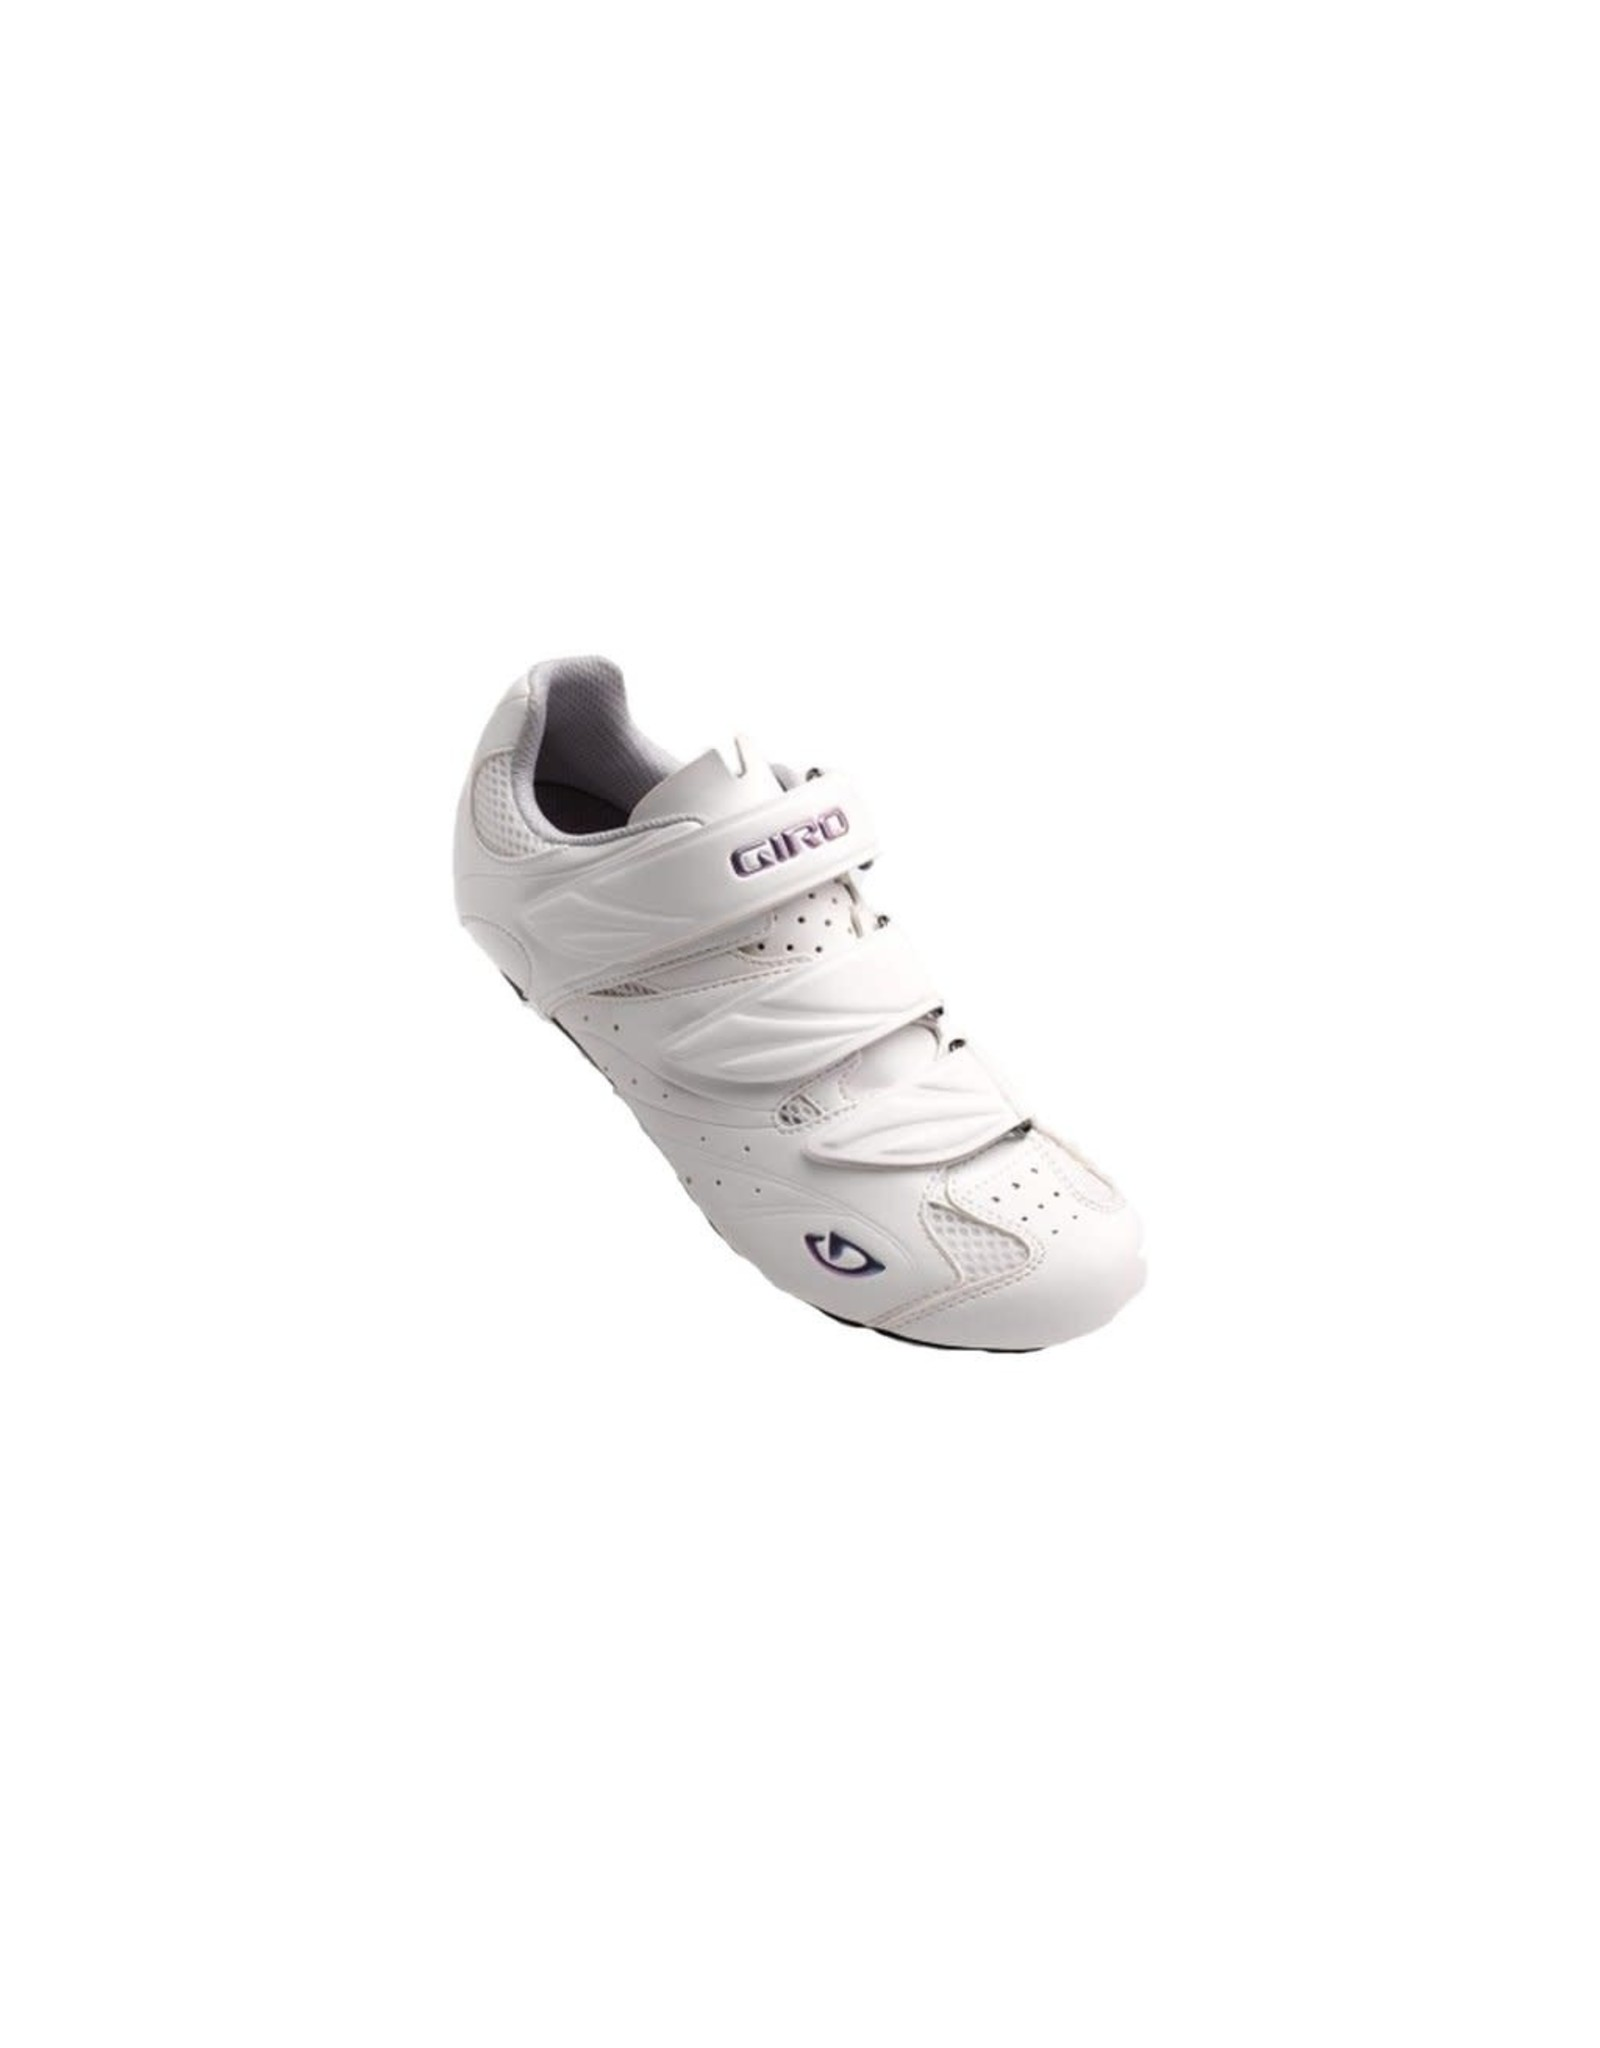 Giro Giro Sante II Women's Road Shoe